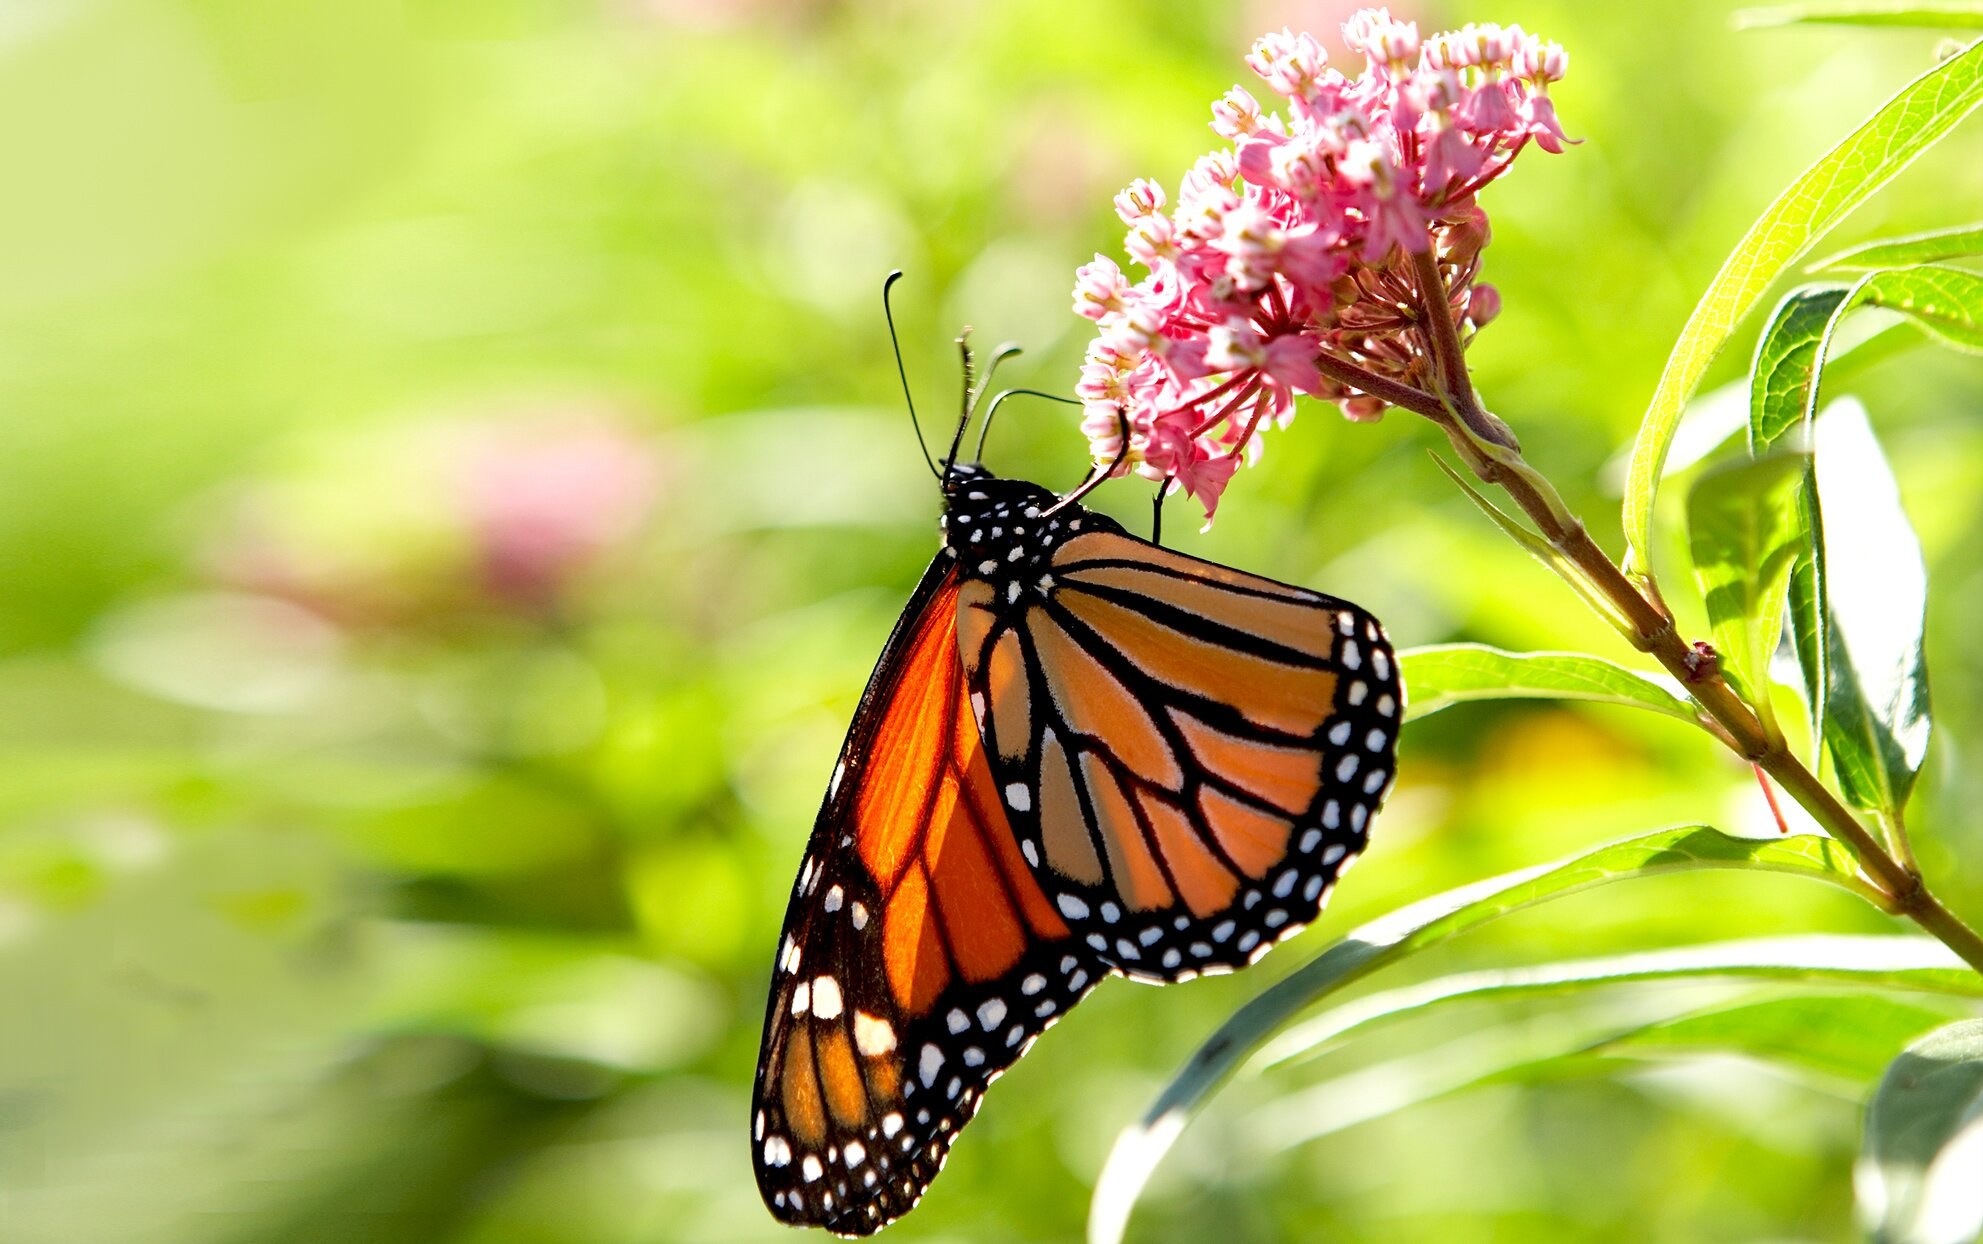 Monarch butterfly on a Milkweed